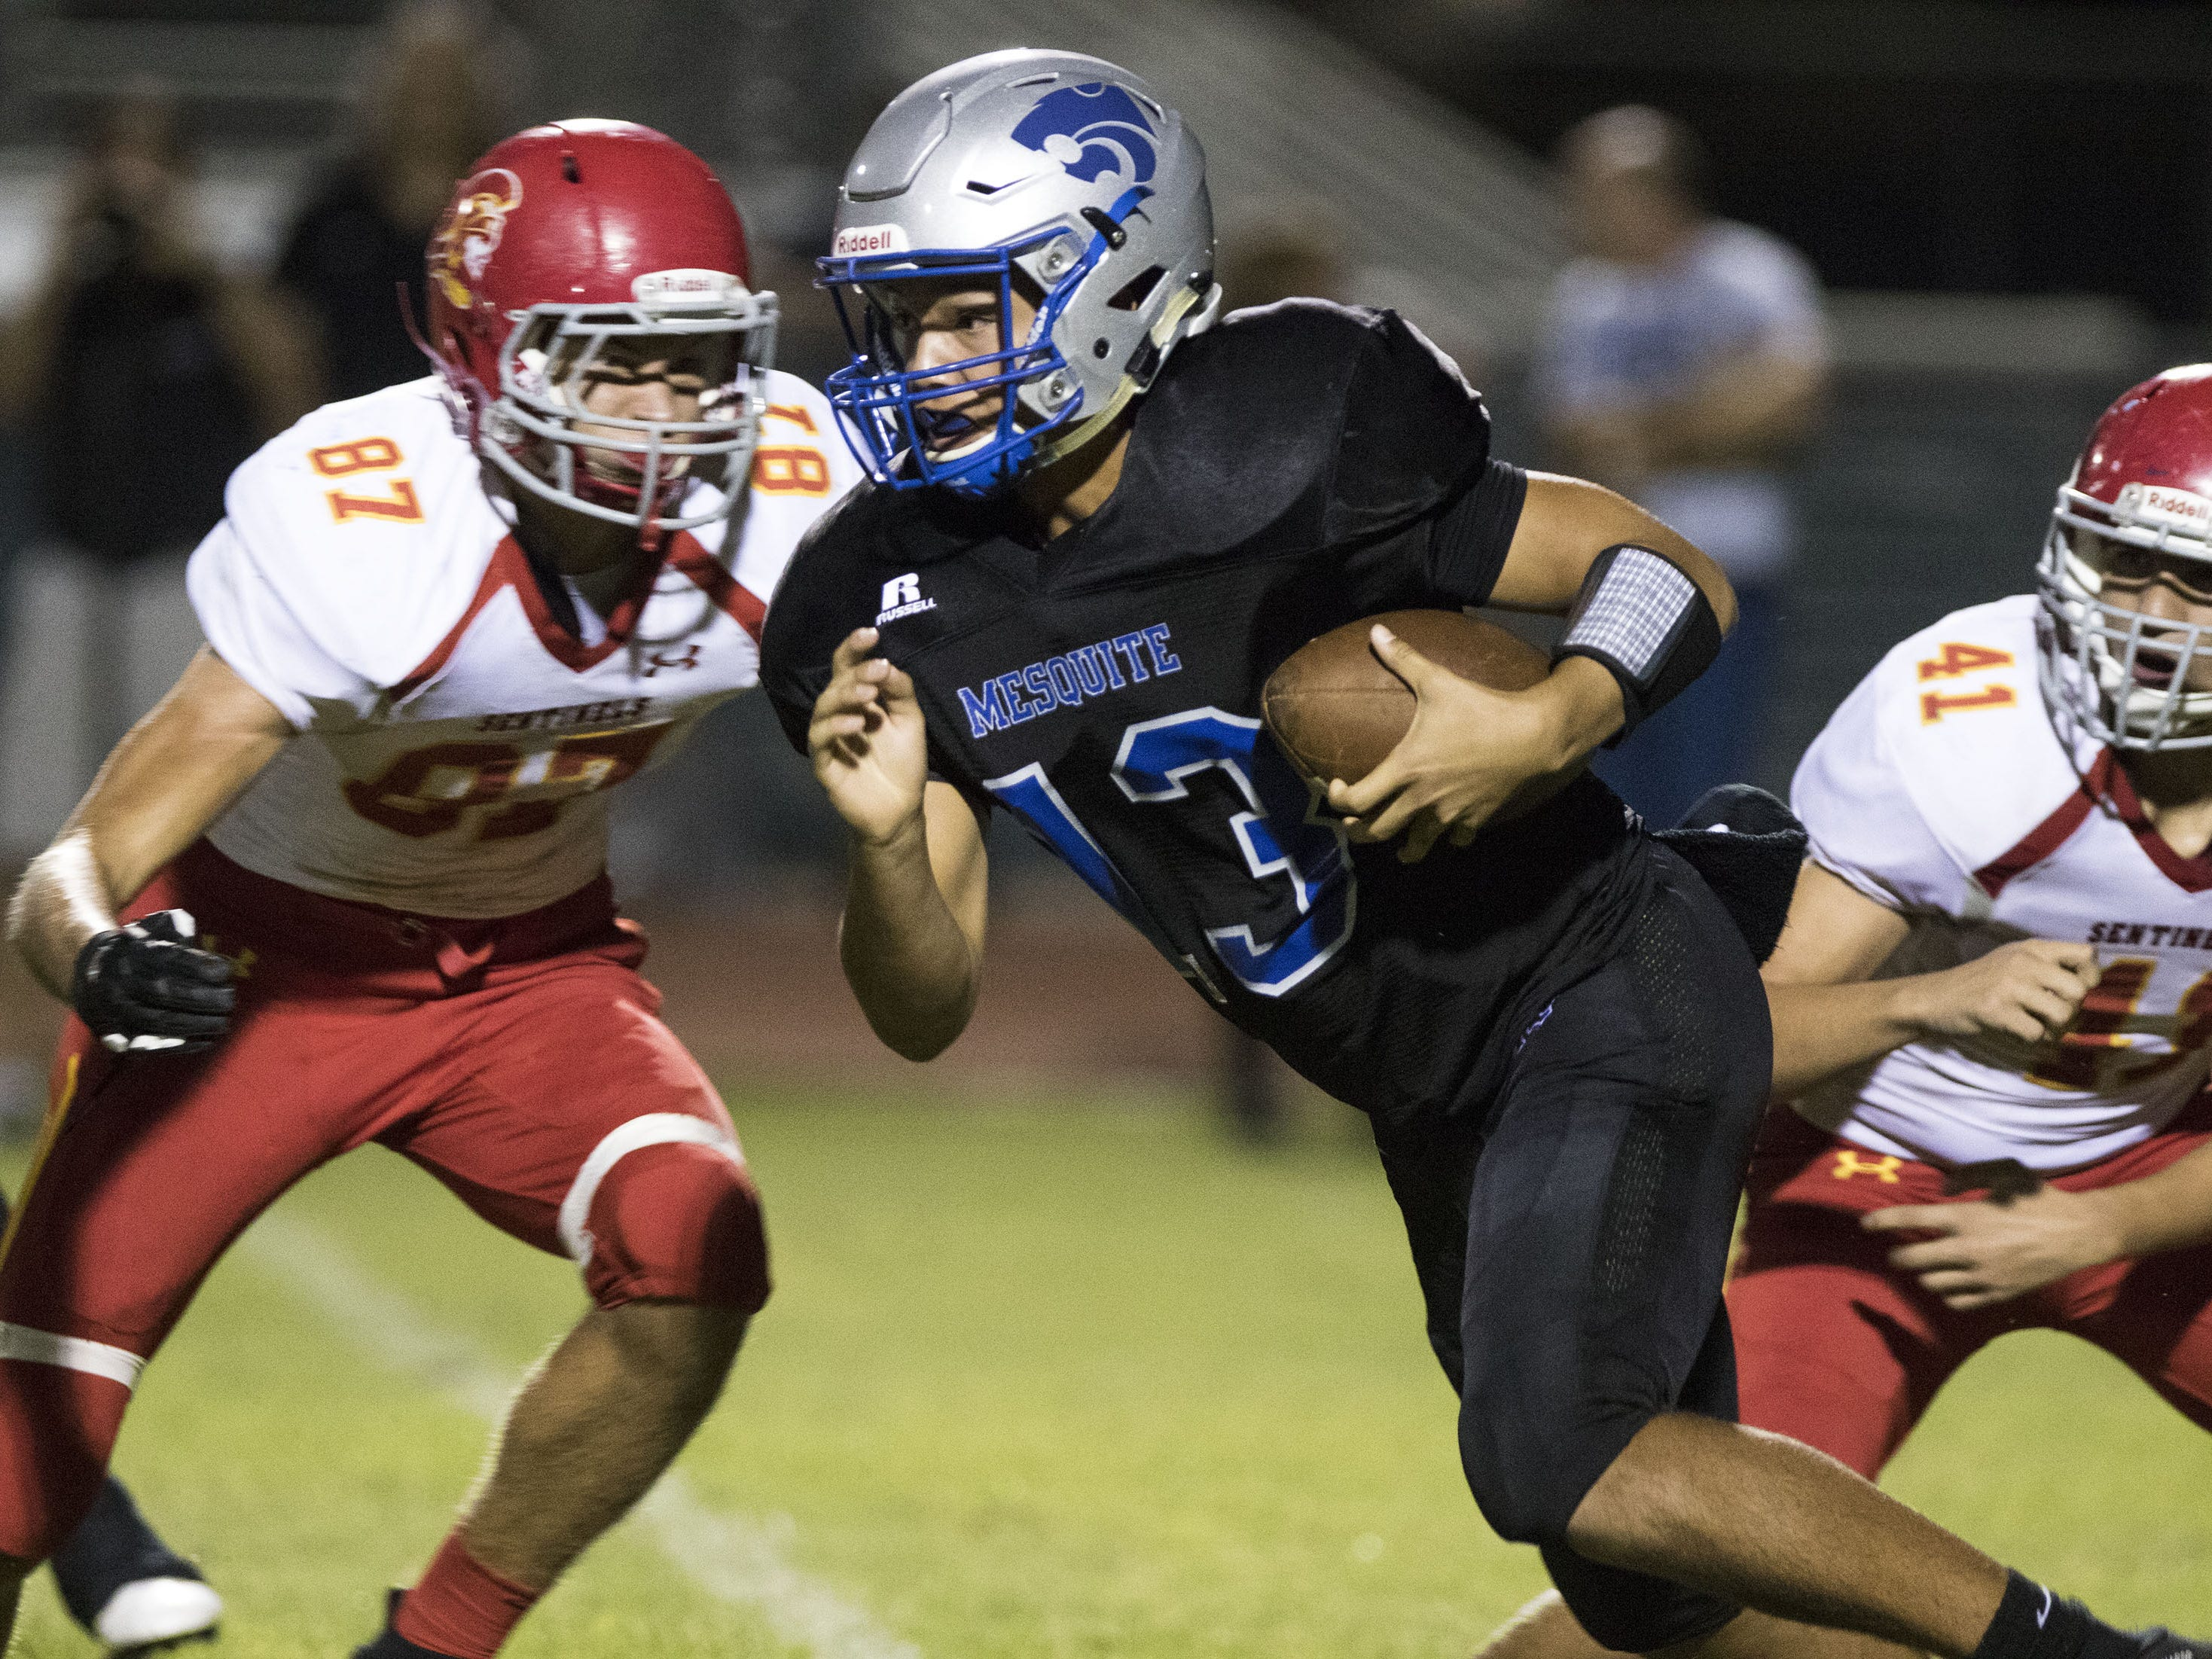 Mesquite's Ty Thompson looks for running room against Seton's defense during their game in Gilbert Friday, Sept. 21, 2018. #azhsfb